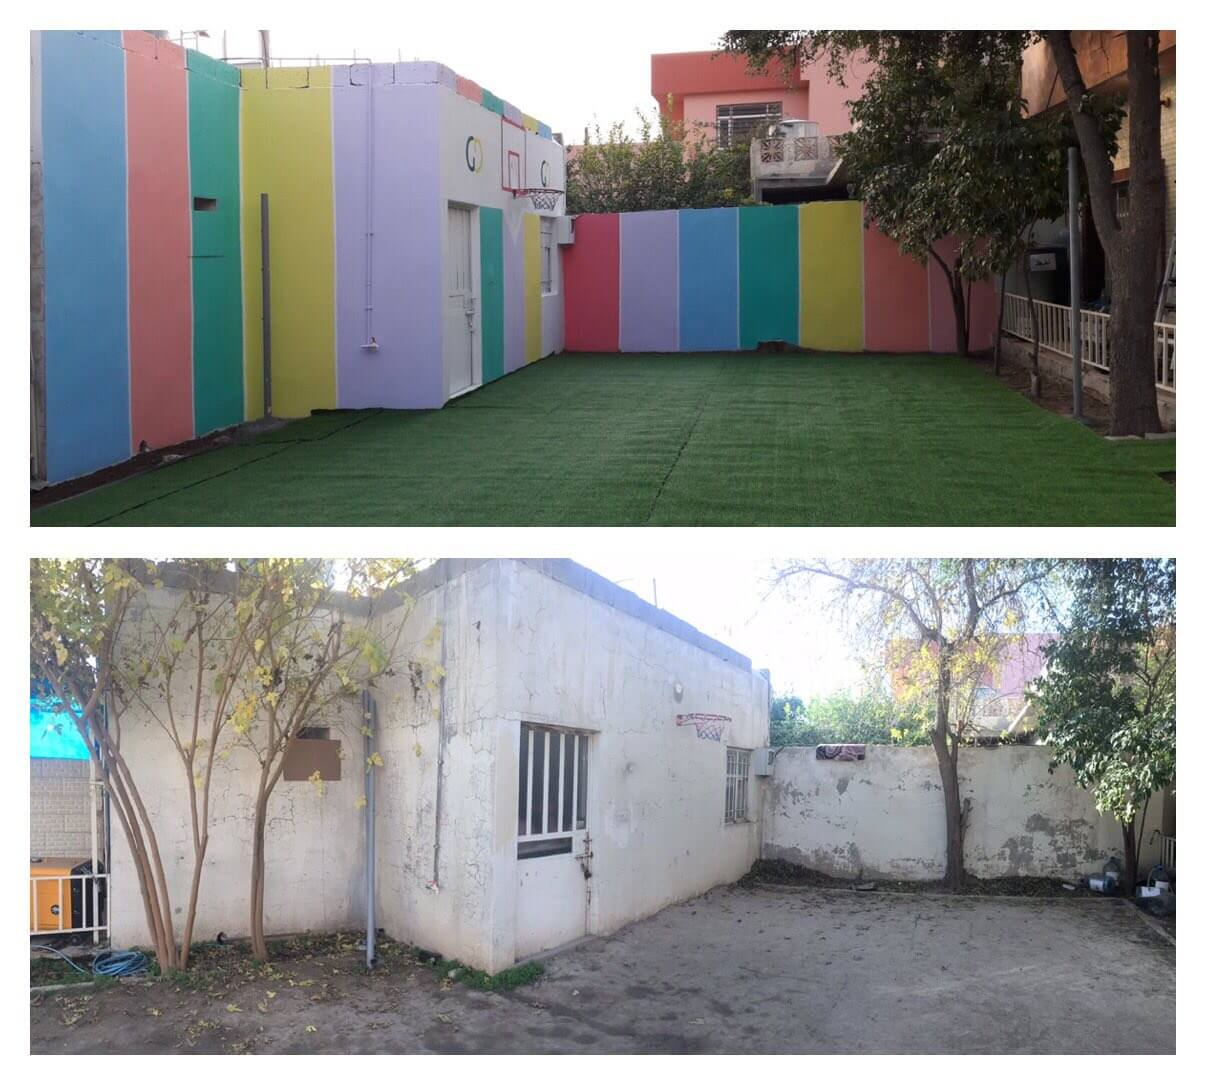 Green Desert continues to rehabilitate and paint schools in the governorates of Erbil, Kirkuk, and Mosul.